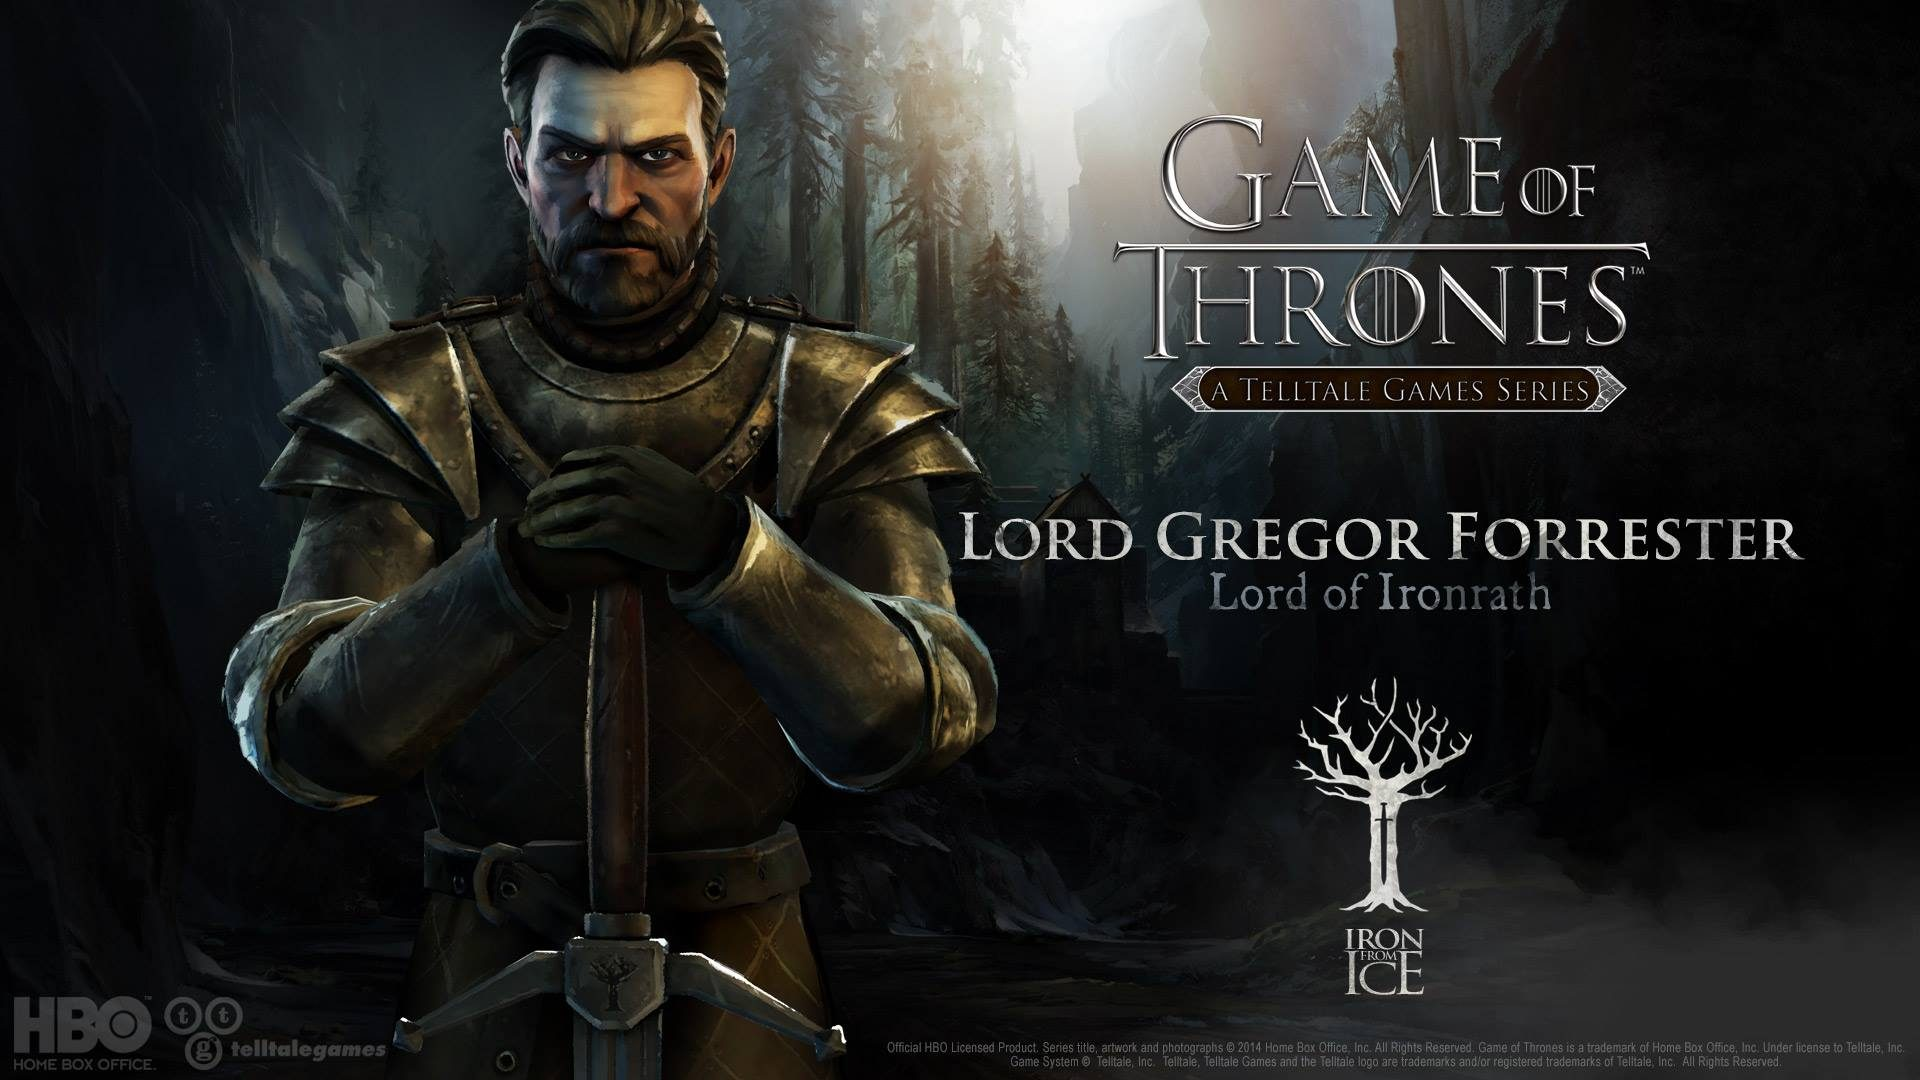 via HBO/Telltale Games